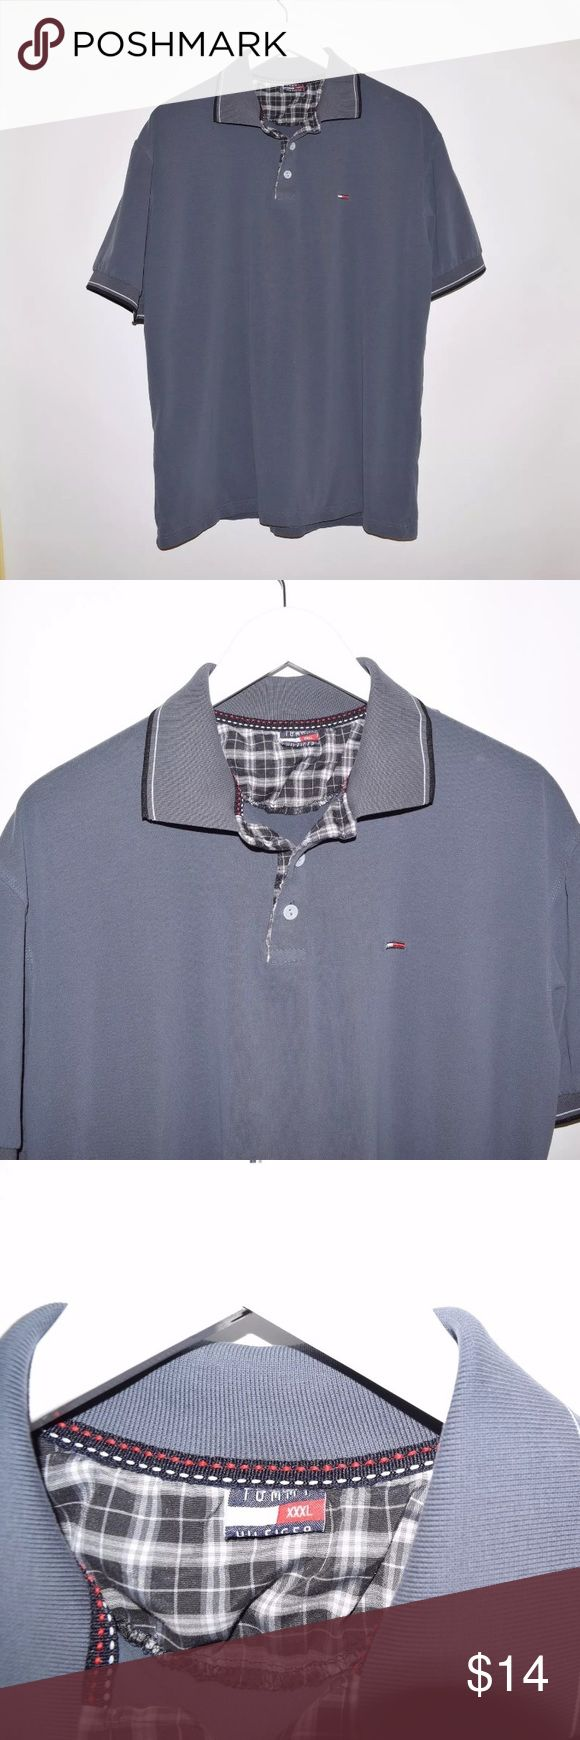 Rare Vintage Tommy Hilfiger Soft Polo Shirt XXXL Brand: Tommy Hilfiger Item name: Women's Vintage Plaid Soft Polo Shirt   Color: Dark Grey Condition: This is a pre-owned item. It is in excellent condition with no stains, rips, holes, etc.Comes from a smoke free household. Size: XXXL Measurements laying flat: Pit to pit - 23 inches Neckline to base - 28 inches Tommy Hilfiger Tops